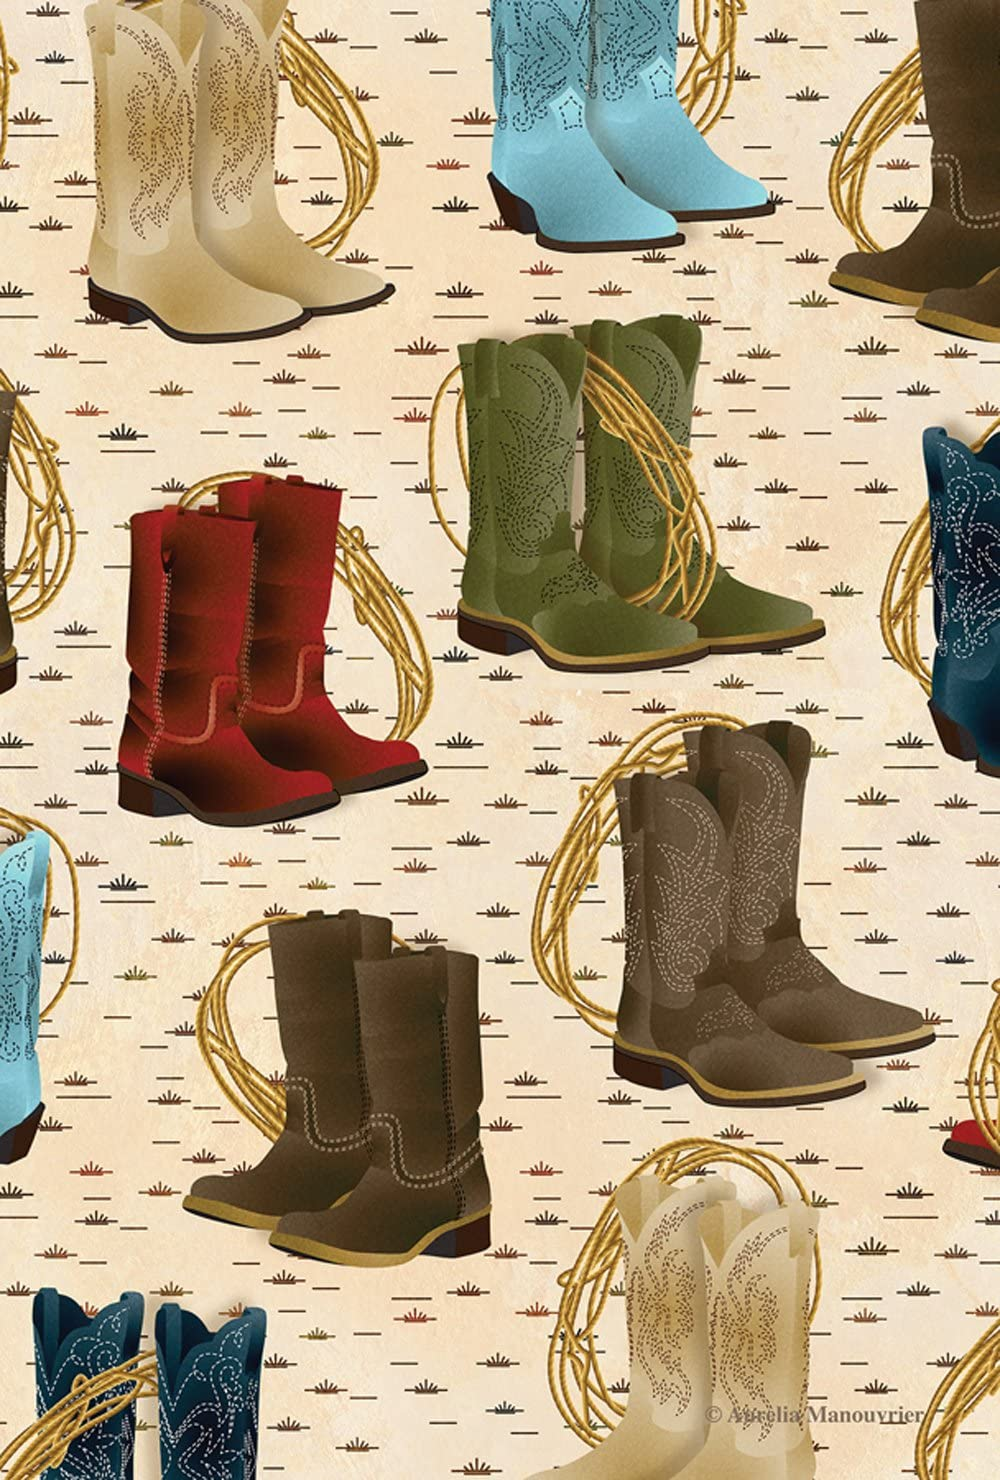 Toland Home Garden Country Boots 28 x 40 Inch Decorative Southwest Farm Boot Rodeo Lasso House Flag